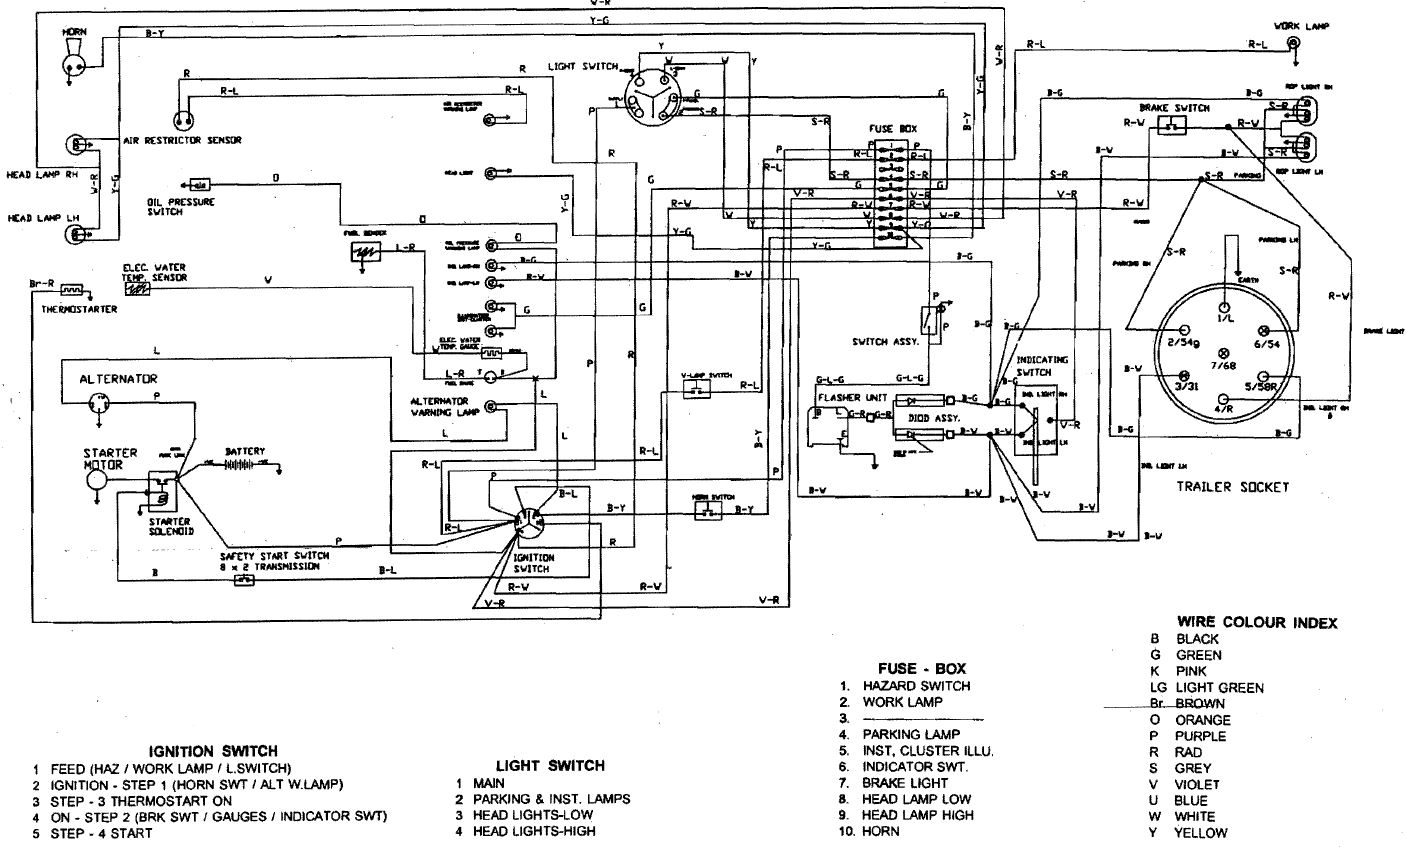 20158463319_b82d524c3d_o ignition switch wiring diagram john deere lawn mower wiring diagrams at edmiracle.co